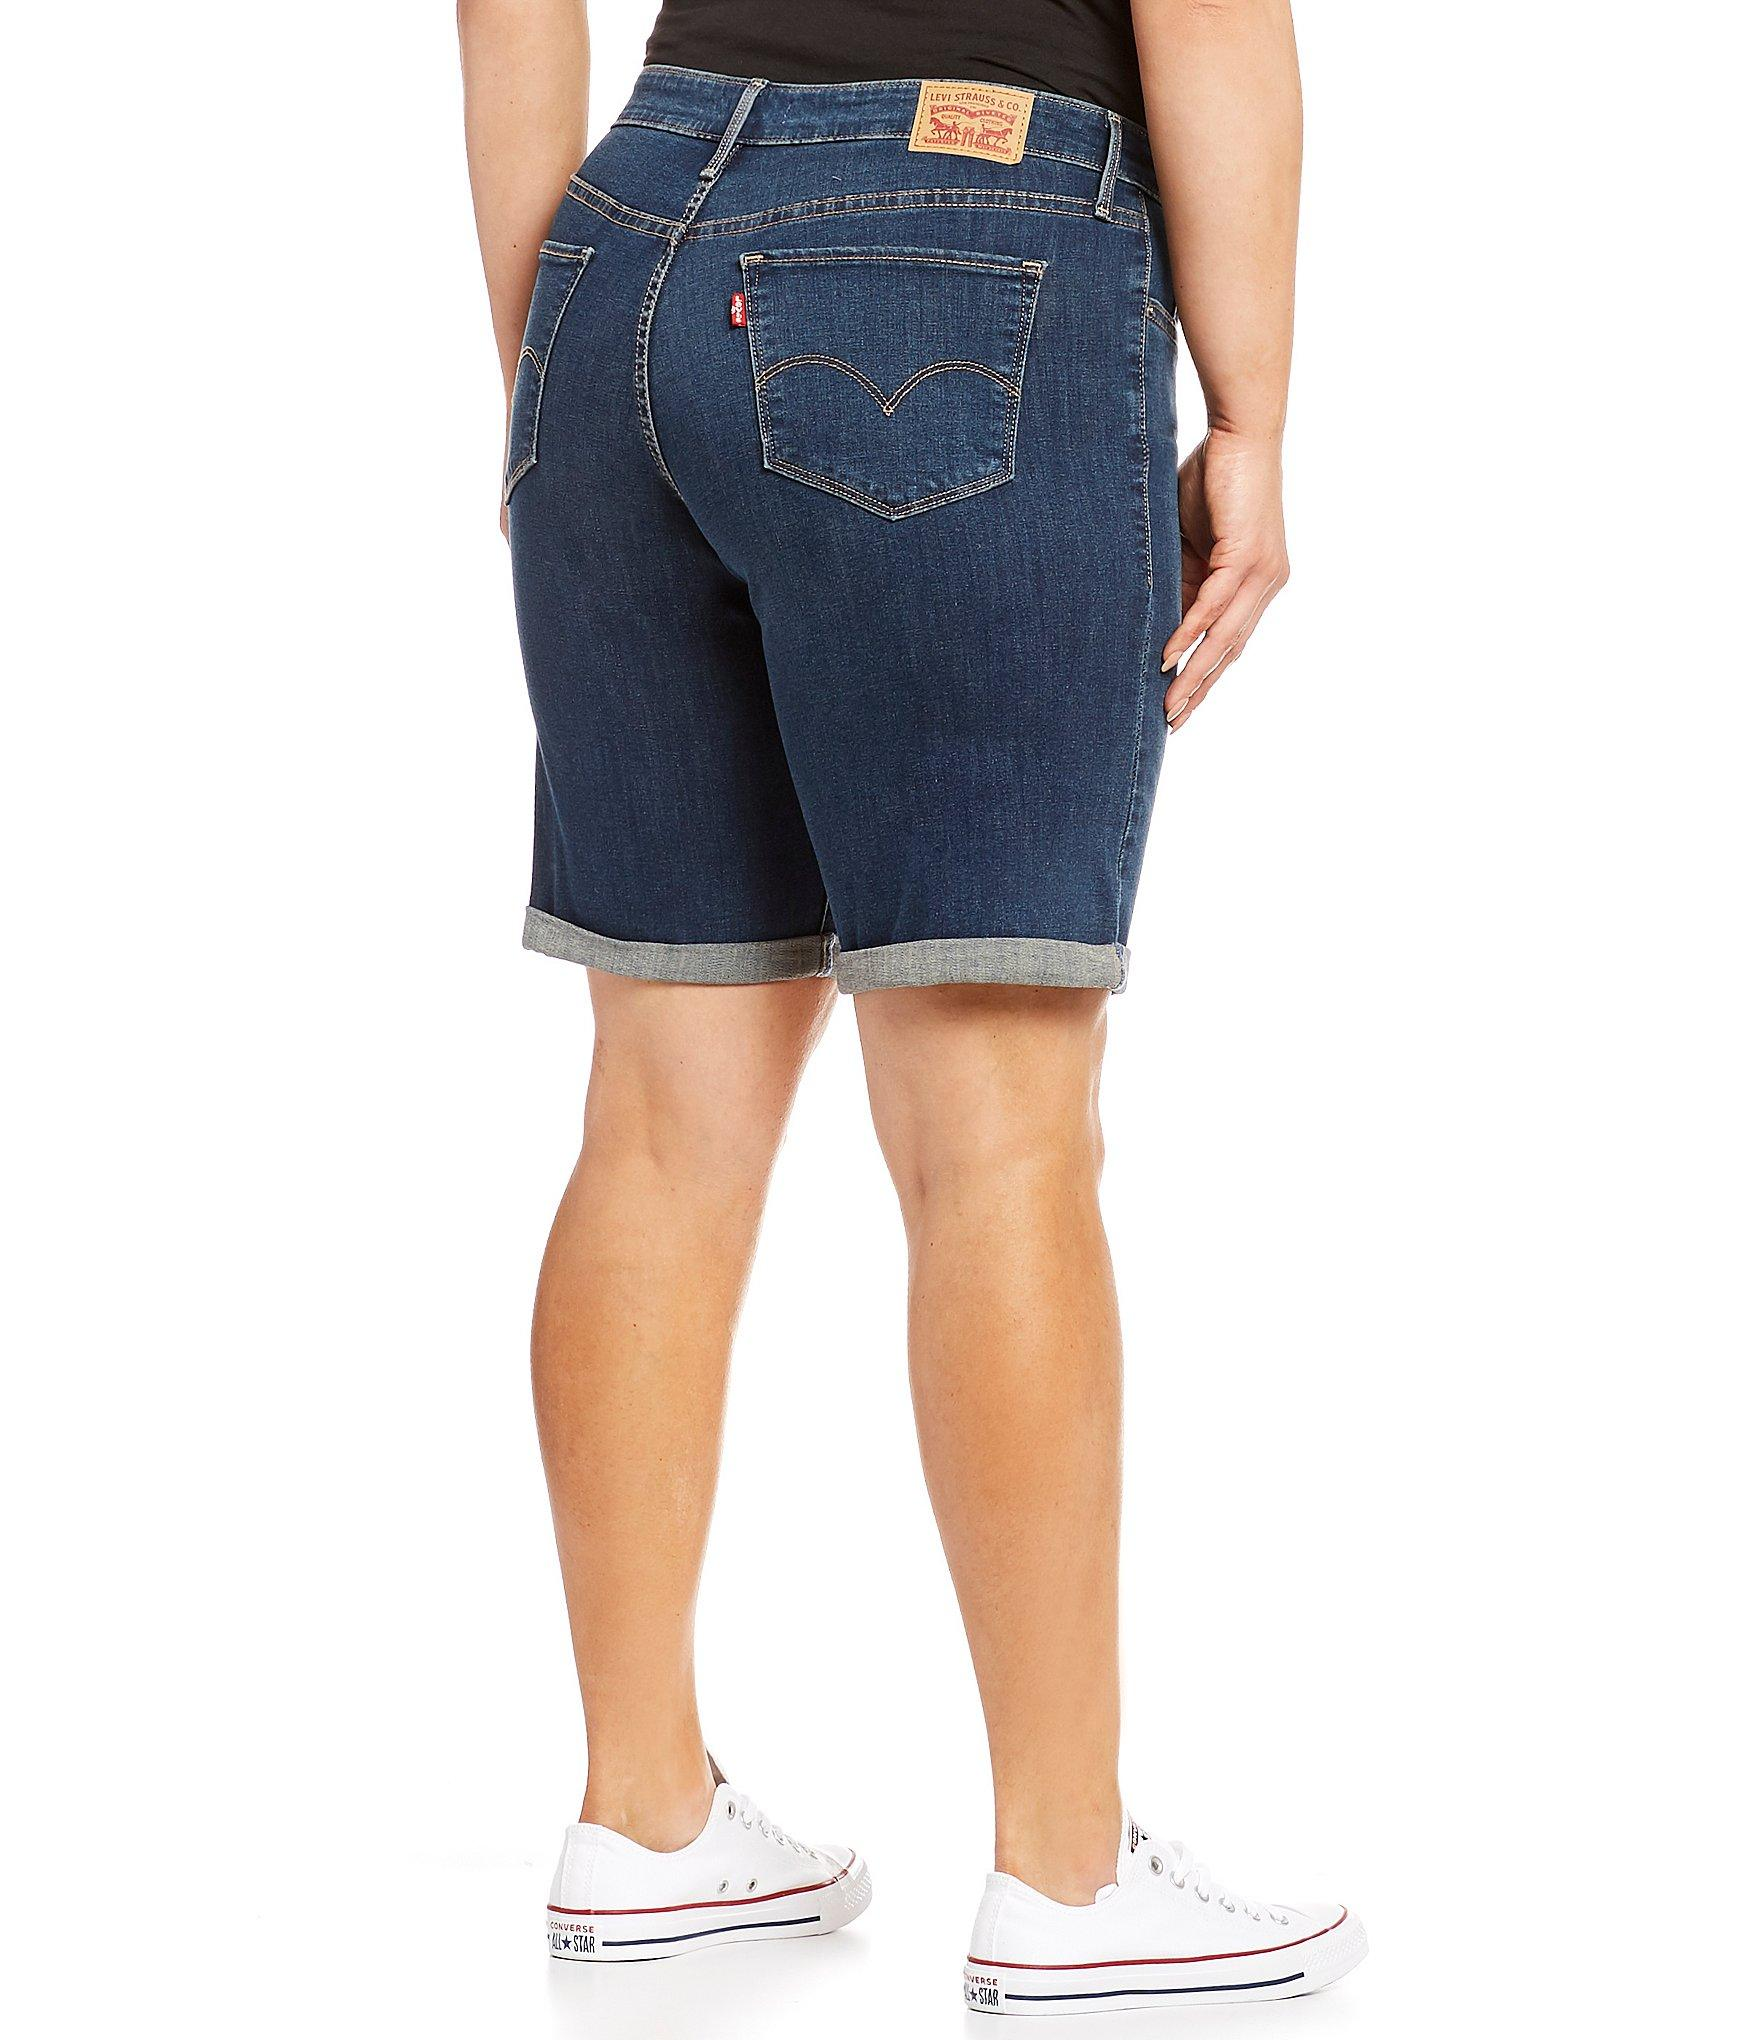 c6a55ceb Levi's - Blue Plus Size Shaping Bermuda Shorts - Lyst. View fullscreen